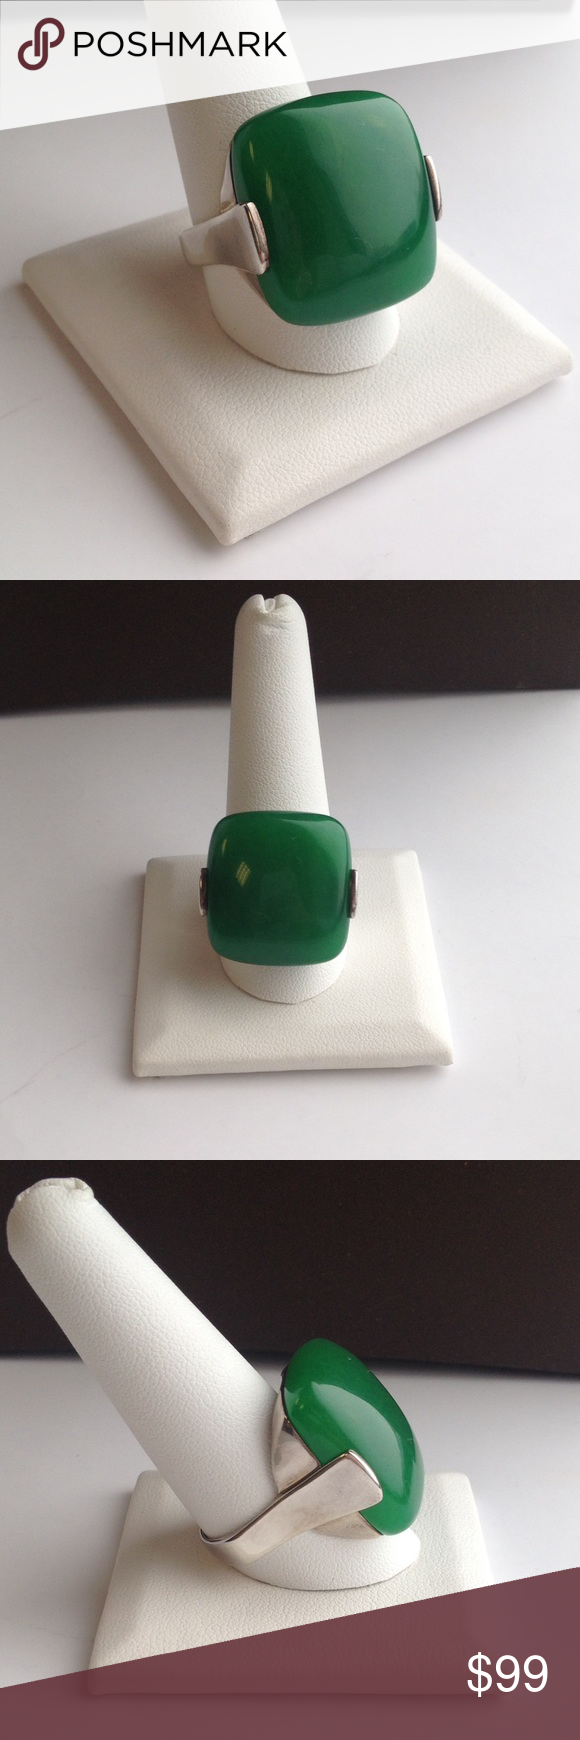 Green Stone Sterling Silver Ring Like new sterling silver ring with green stone. SKU: RS9756 Jewelry Rings